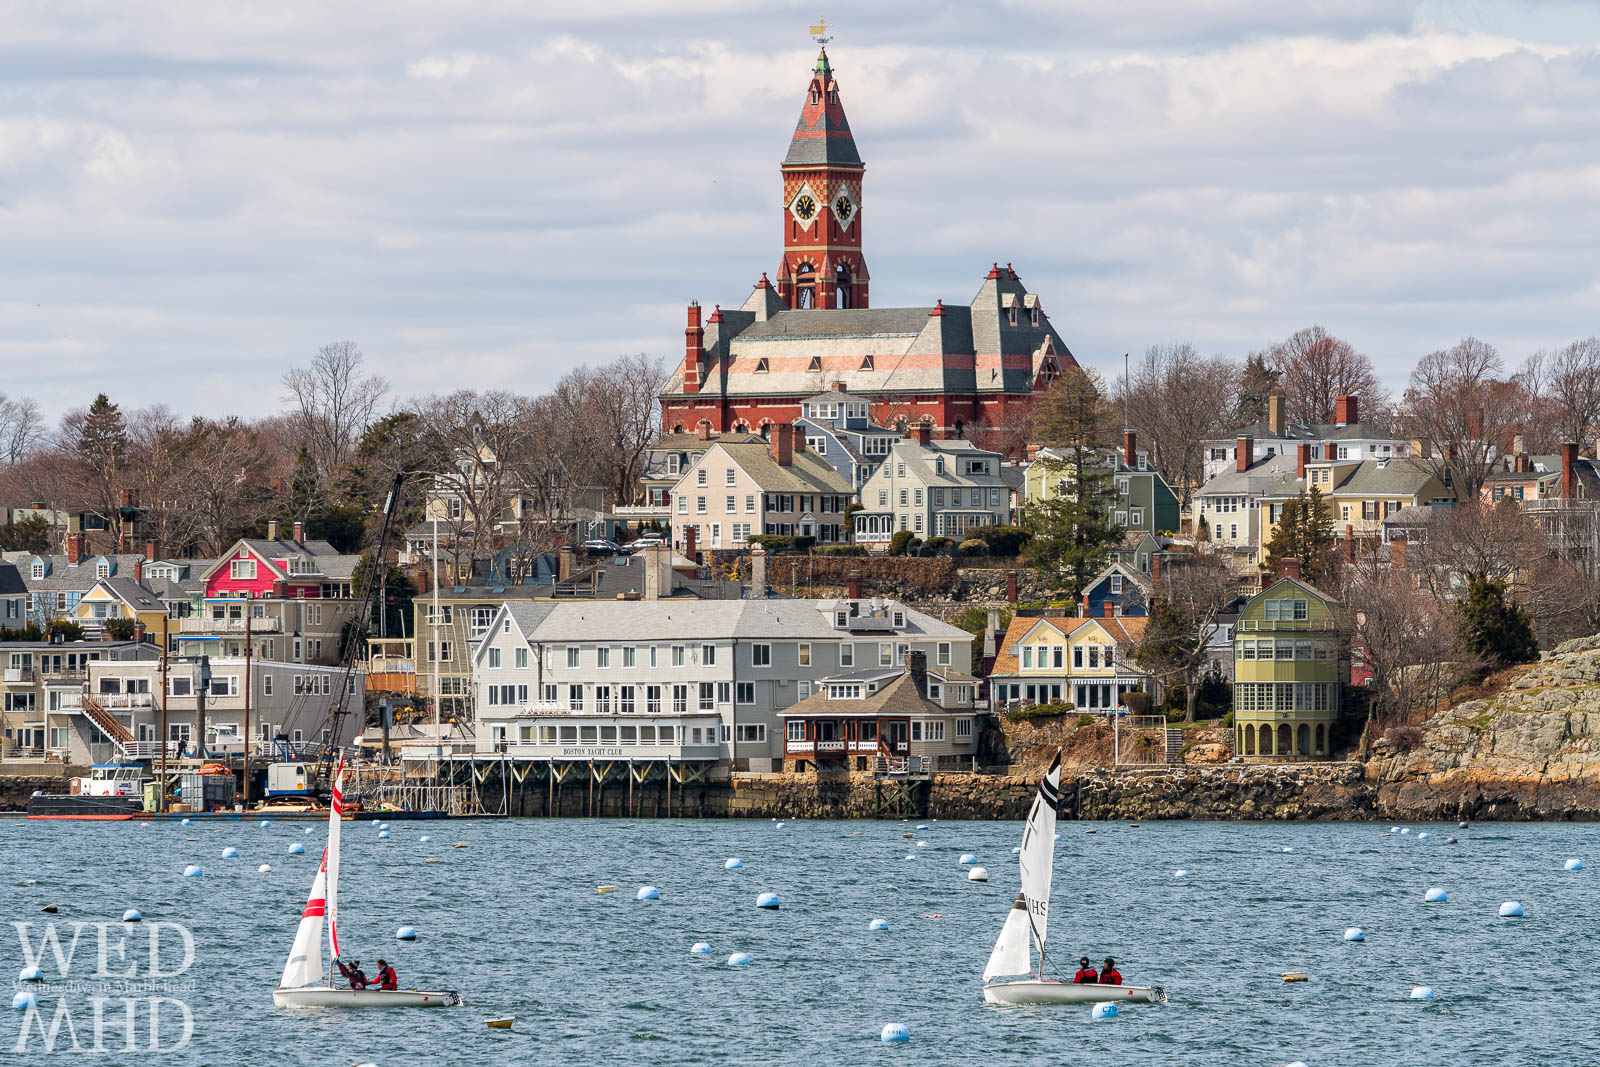 Frostbite sailing takes place on a beautiful sunday in April with Marblehead harbor yet to fill with boats for the season